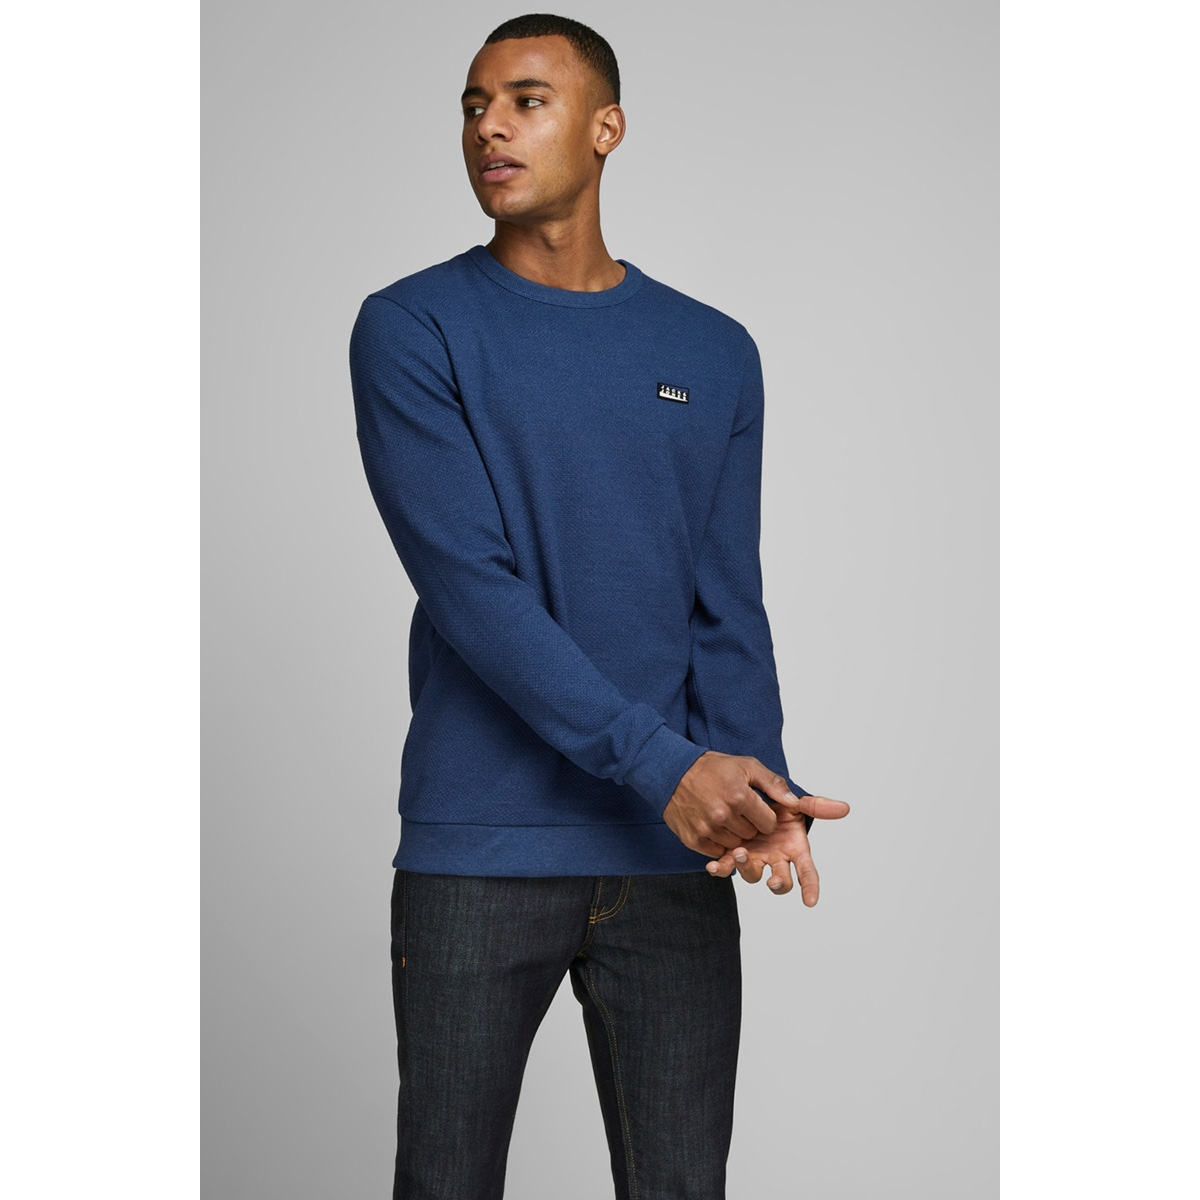 jcojuan sweat crew neck 12167190 jack & jones sweater navy peony